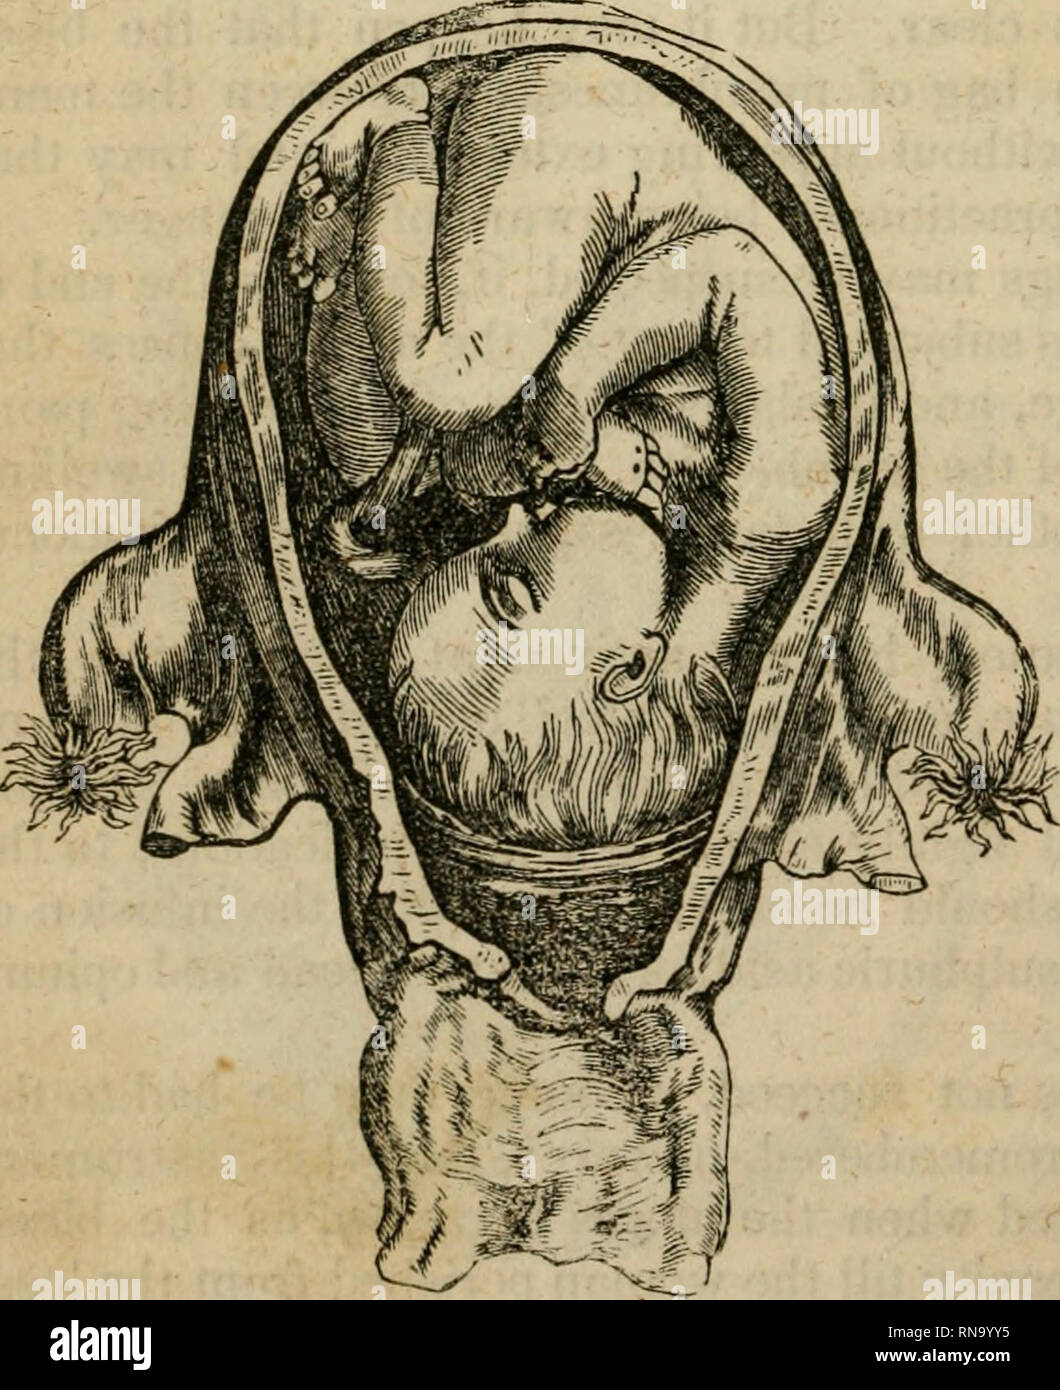 . An analytical compendium of the various branches of medical science, for the use and examination of students. Anatomy; Physiology; Surgery; Obstetrics; Medicine; Materia Medica. 104 OBSTETRICS. the membranes and allowing the liquor amnii to escape. As soon as this is done, the uterus contracts, compresses the orifices of the bleeding vessels, and thus arrests the hemorrhage. Should the contractions not come on, the organ may be stimulated by the administration of ergot, and friction over the abdomen. The OS uteri is generally so relaxed by the hemorrhage as to be very dilatable. It has also  - Stock Image